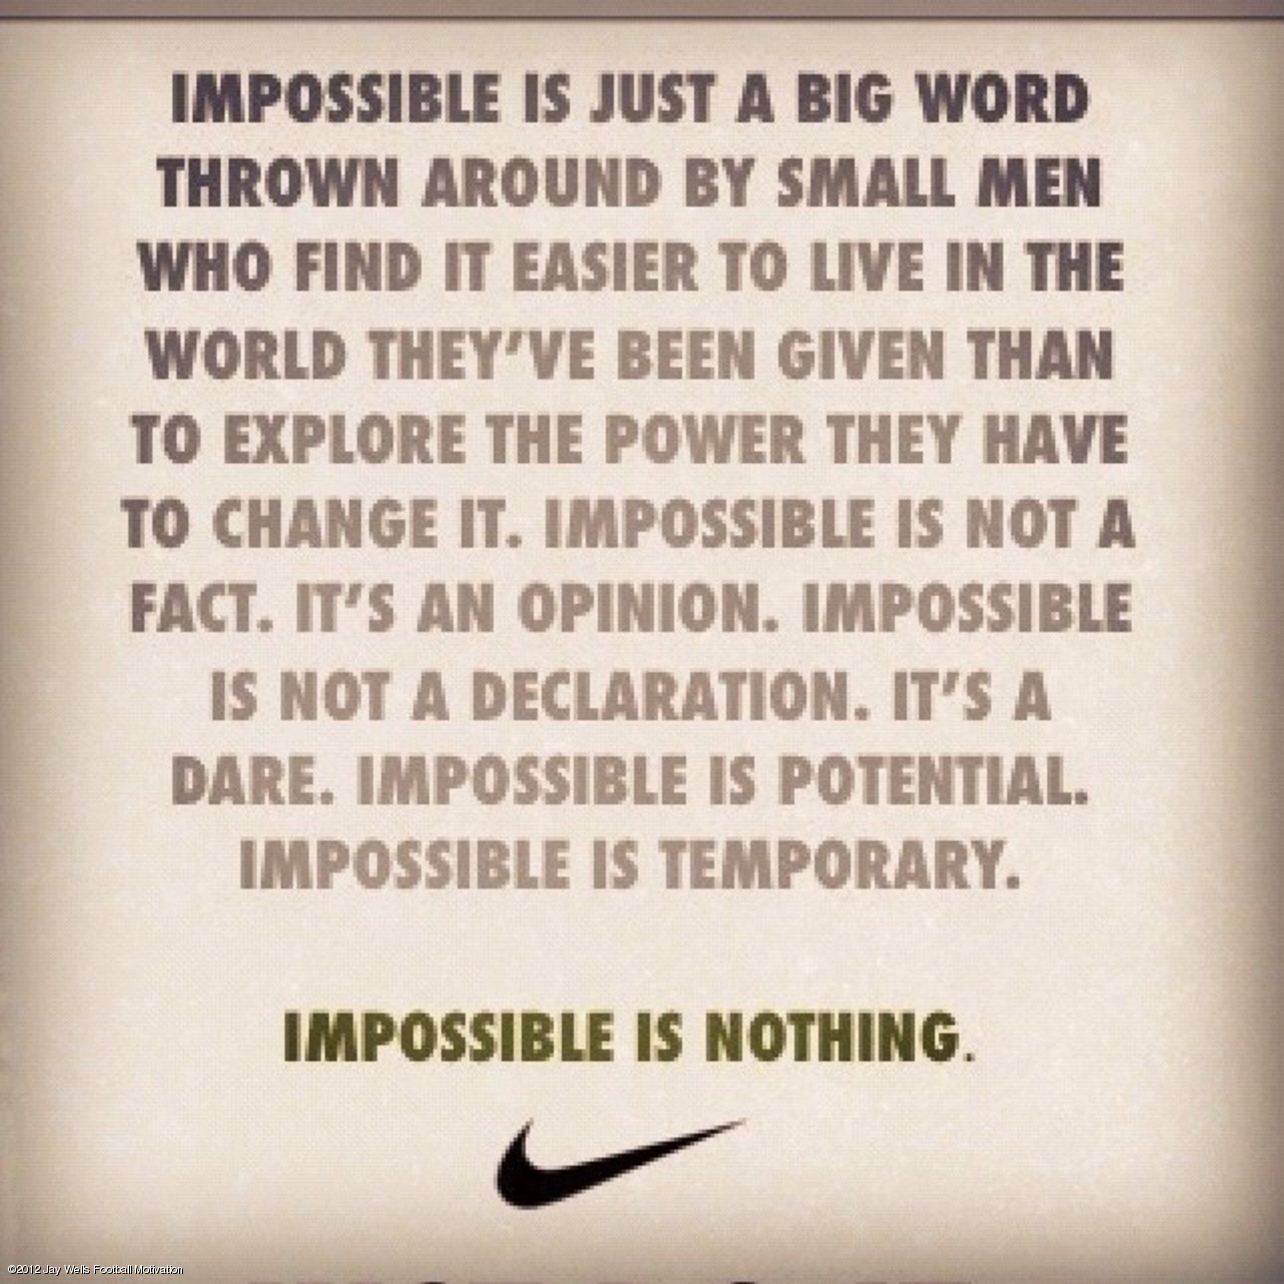 Soccer Quotes Inspirational. QuotesGram